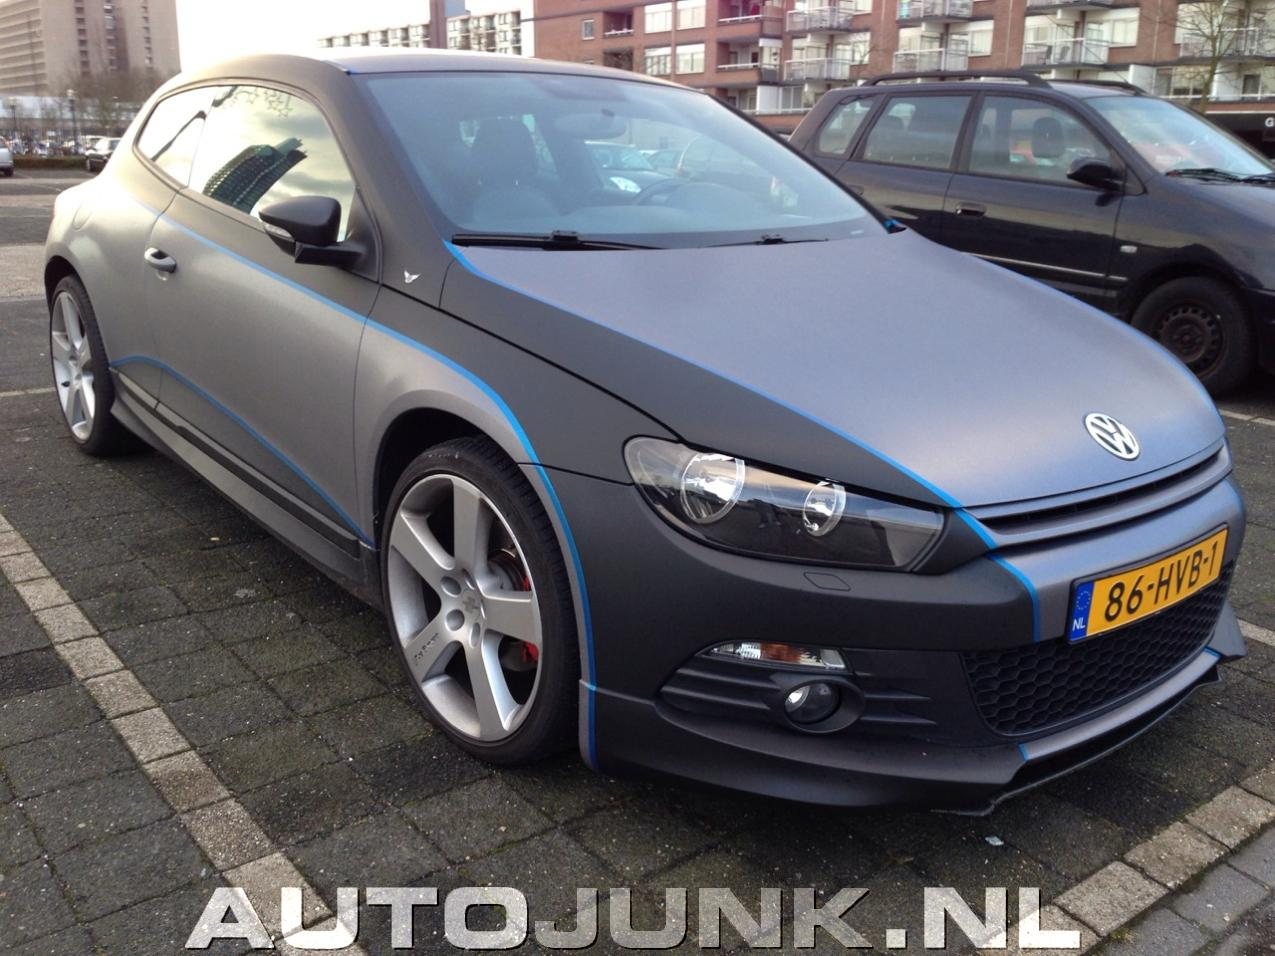 Volkswagen Scirocco 100 Tuning By Wrapaholic Fotos